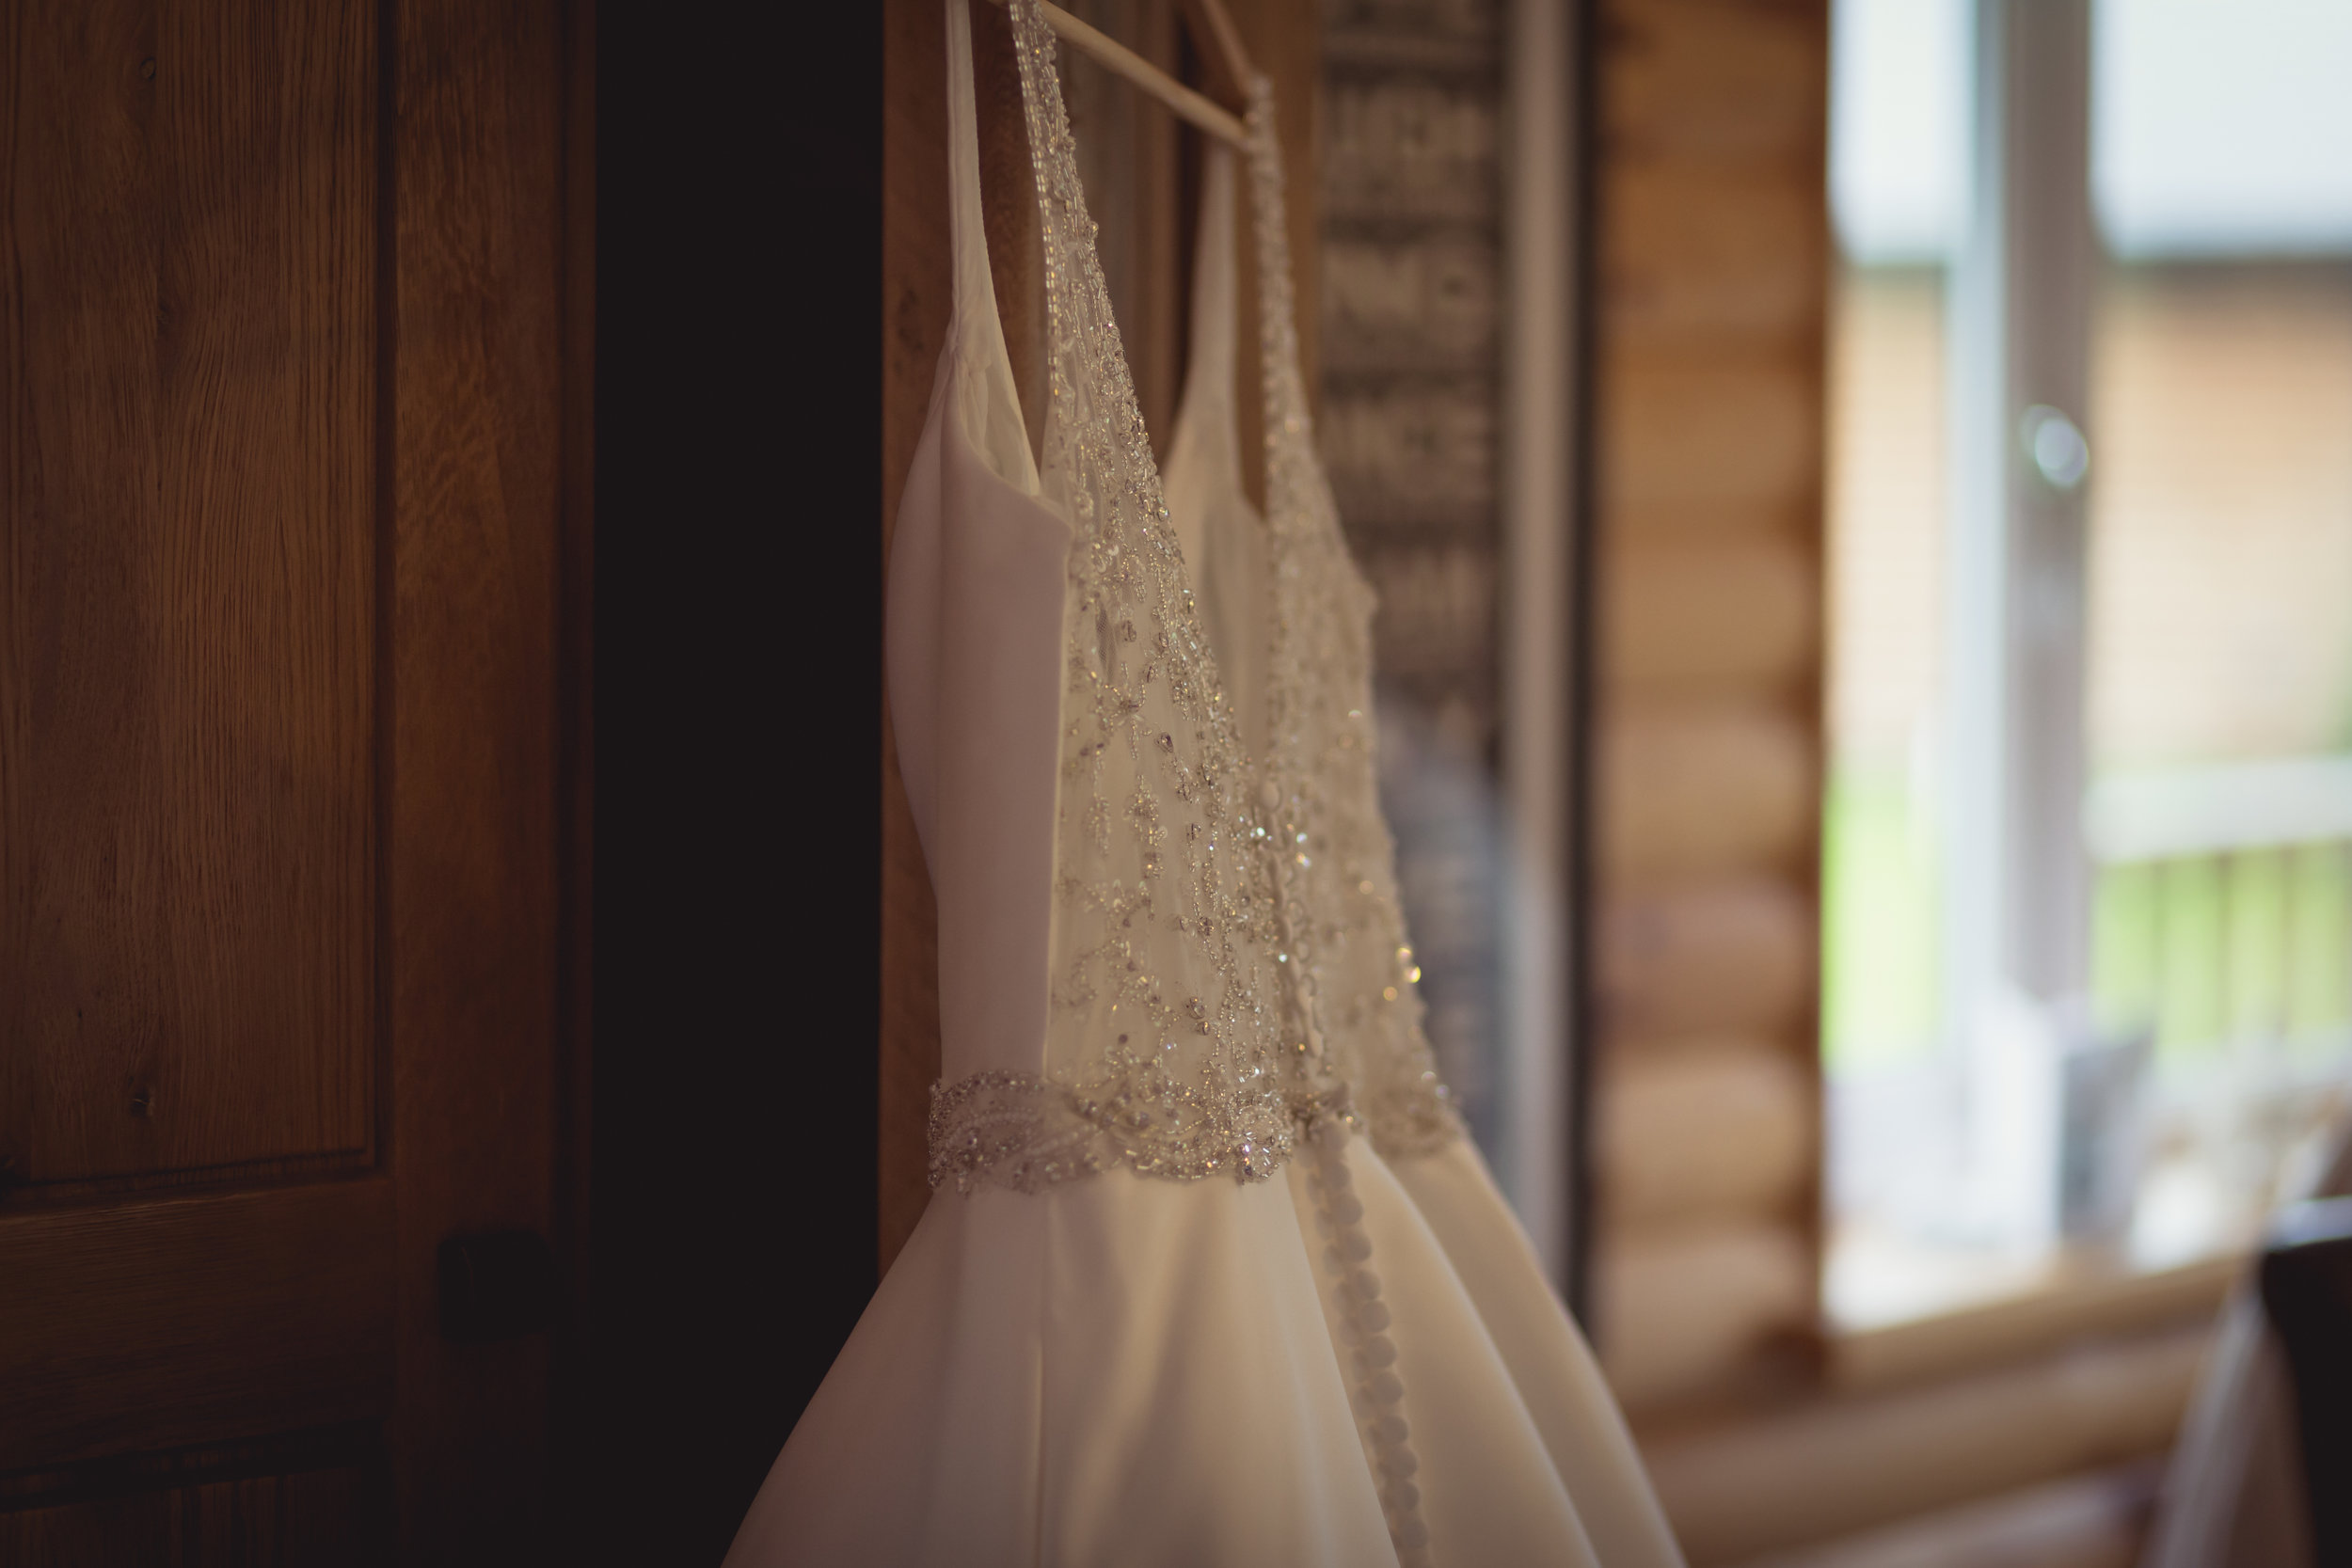 close up photograph showing the detail on a wedding dress at a South Wales wedding